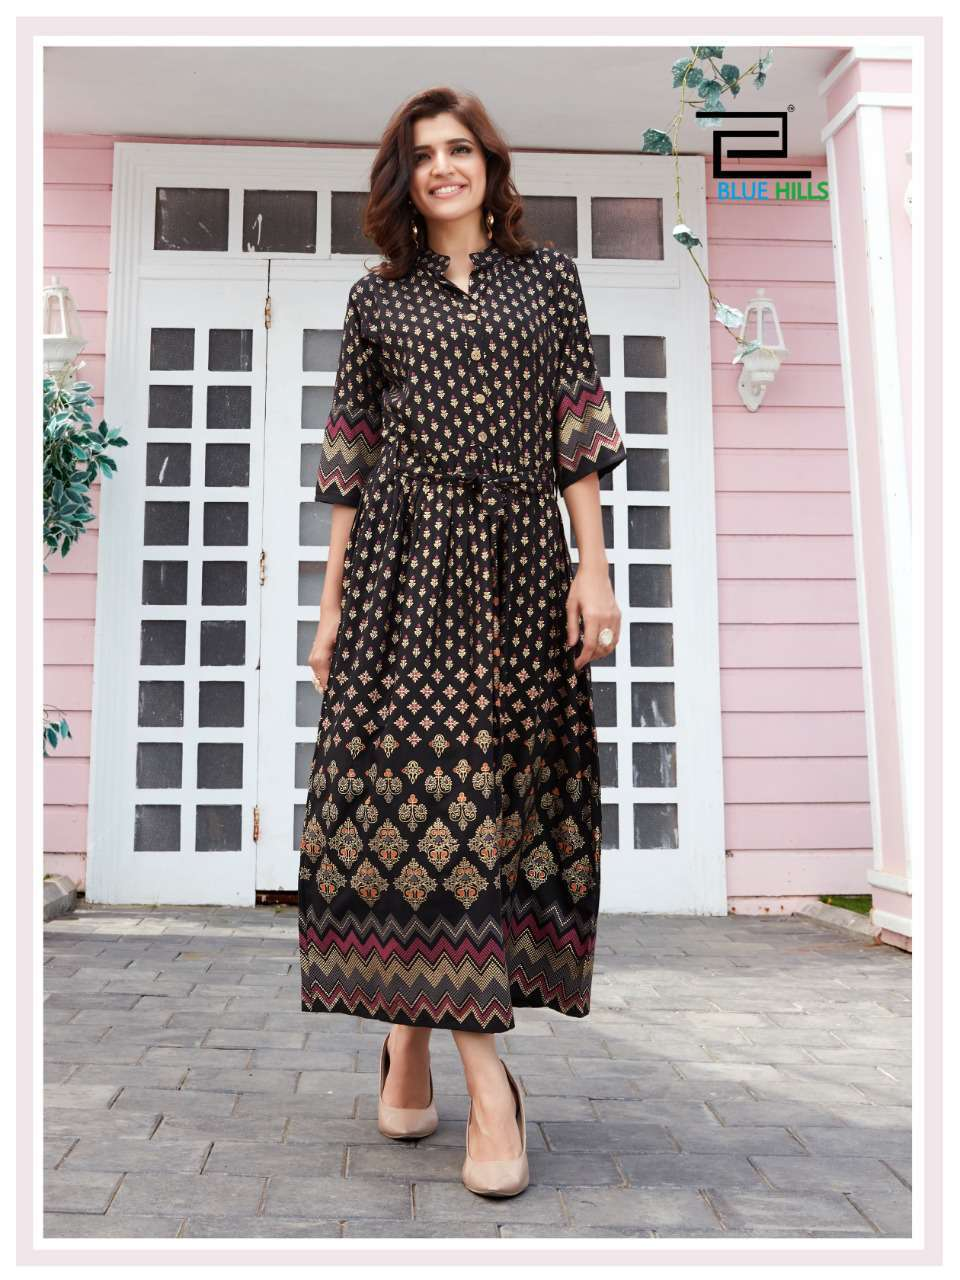 Blue Hills Royal Touch Kurti Wholesale Catalog 4 Pcs 1 - Blue Hills Royal Touch Kurti Wholesale Catalog 4 Pcs